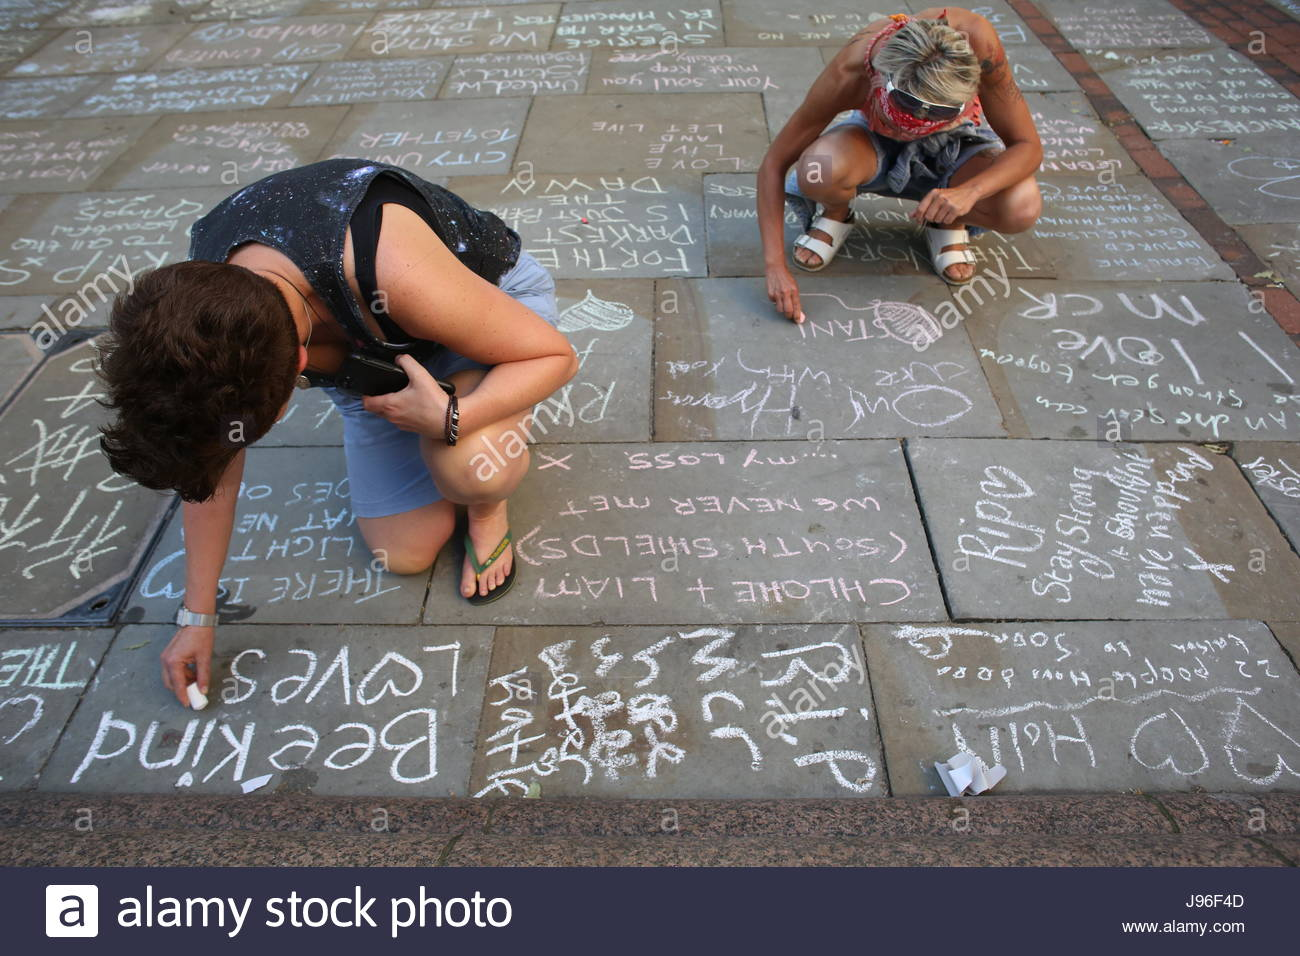 Two women chack messages of support and condolence on the street for the victims of the Manchester bombing in St - Stock Image